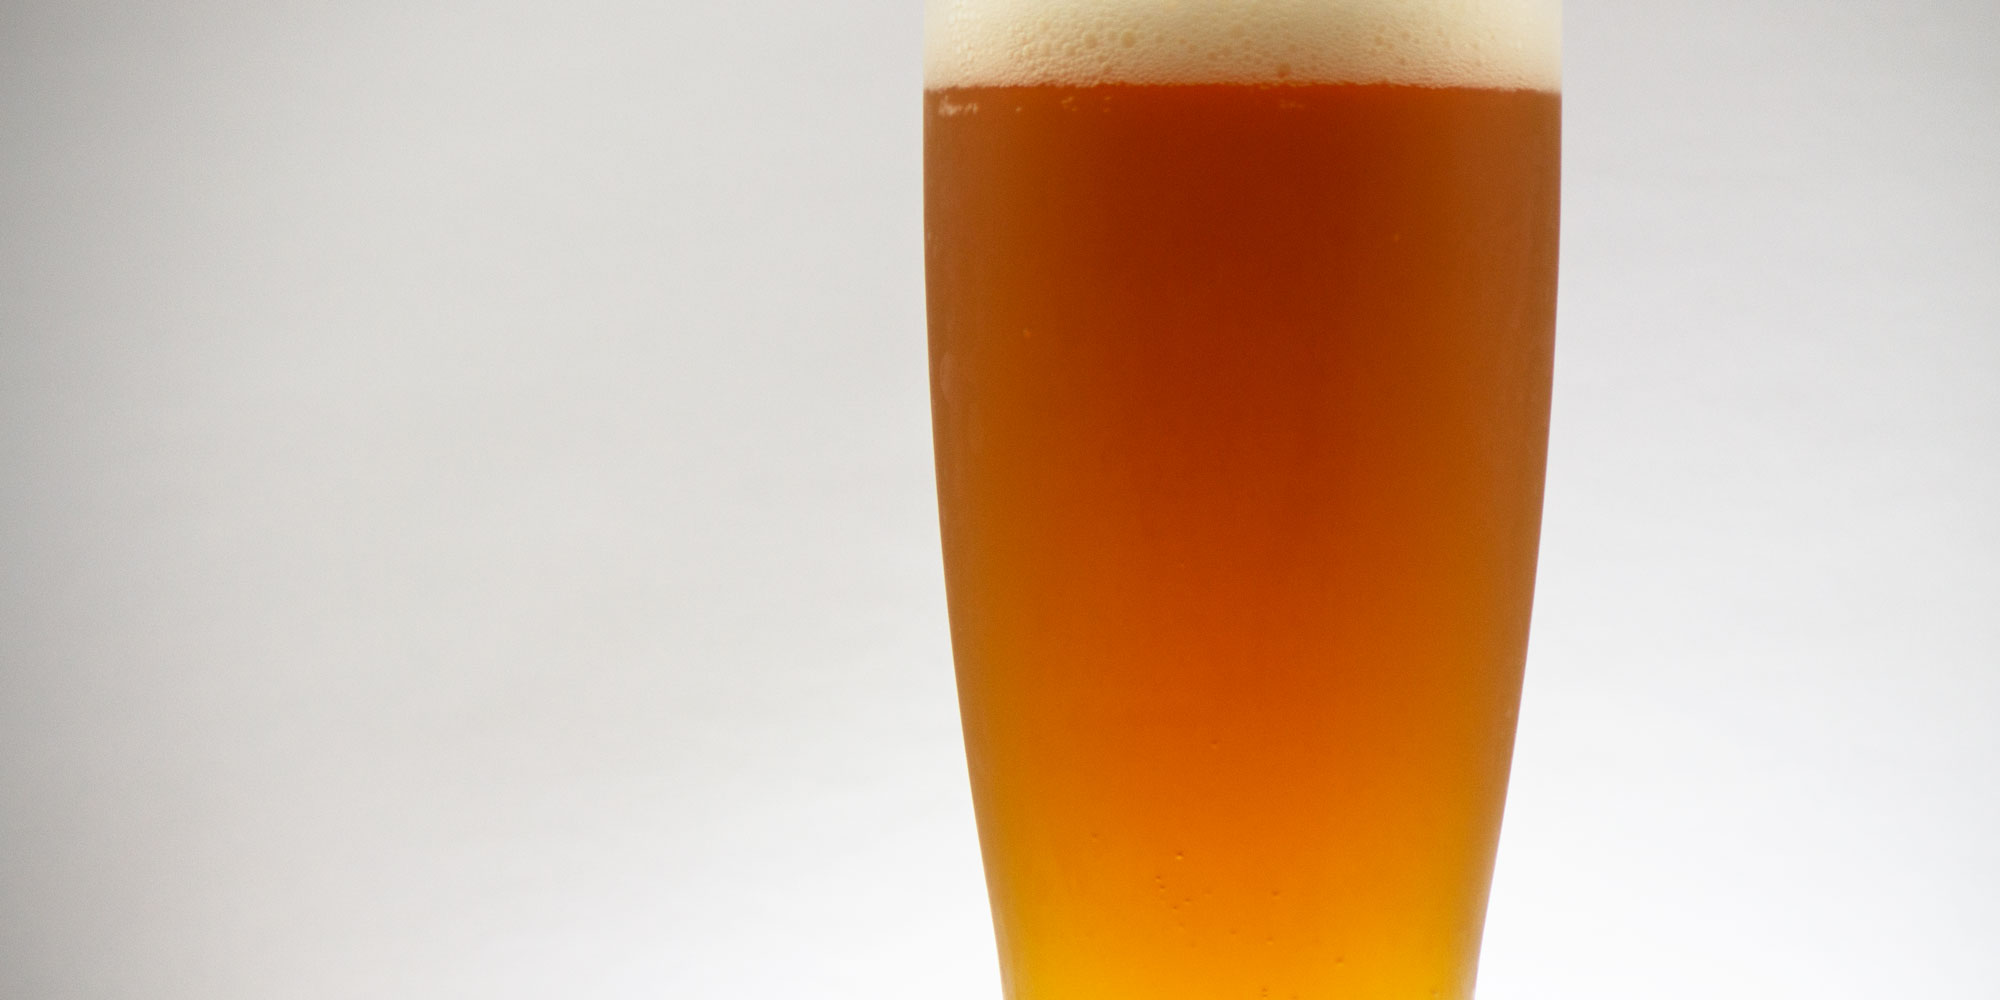 Bottled-Conditioned-Ale---Tama-No-Mgumi05.jpg